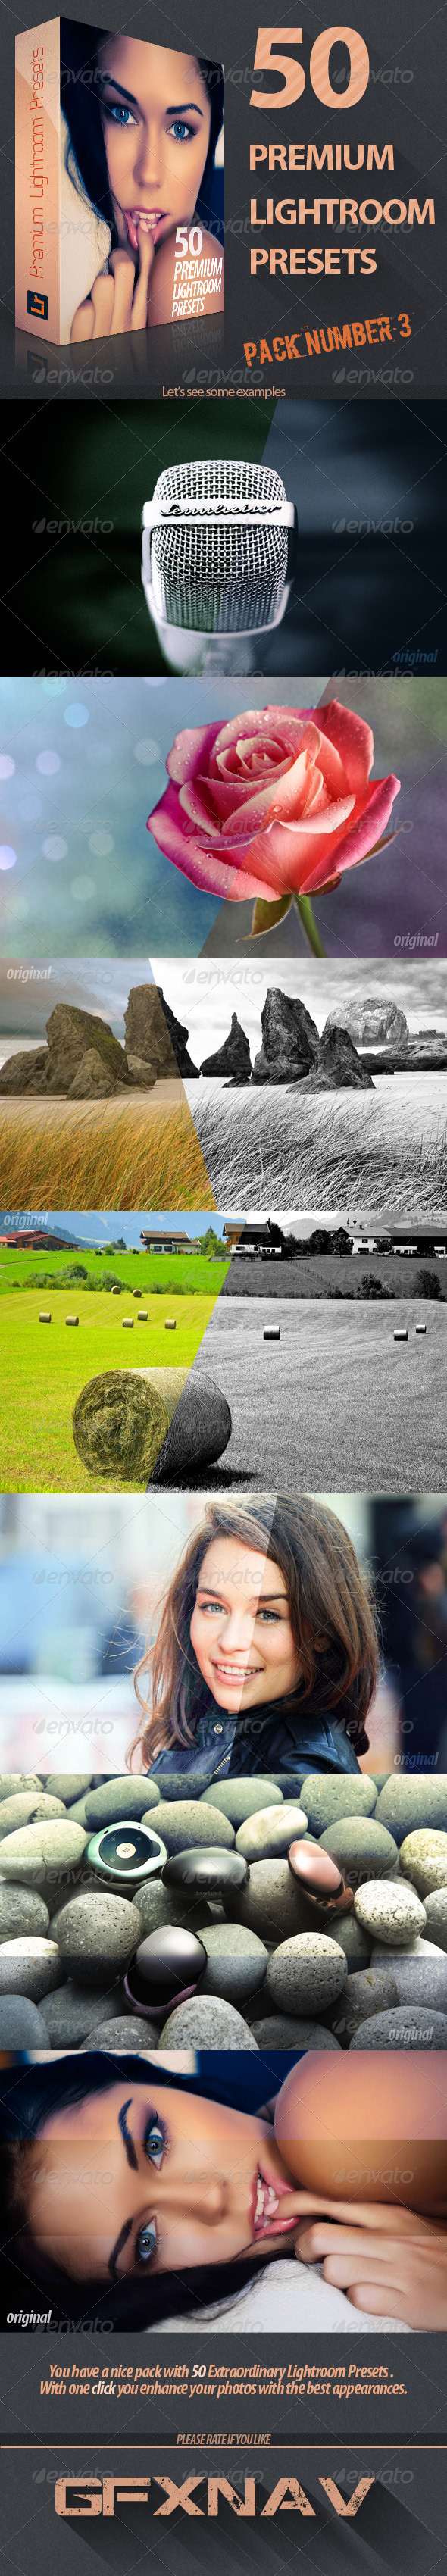 GraphicRiver 50 Premium Lightroom Presets Pack No4 5855669